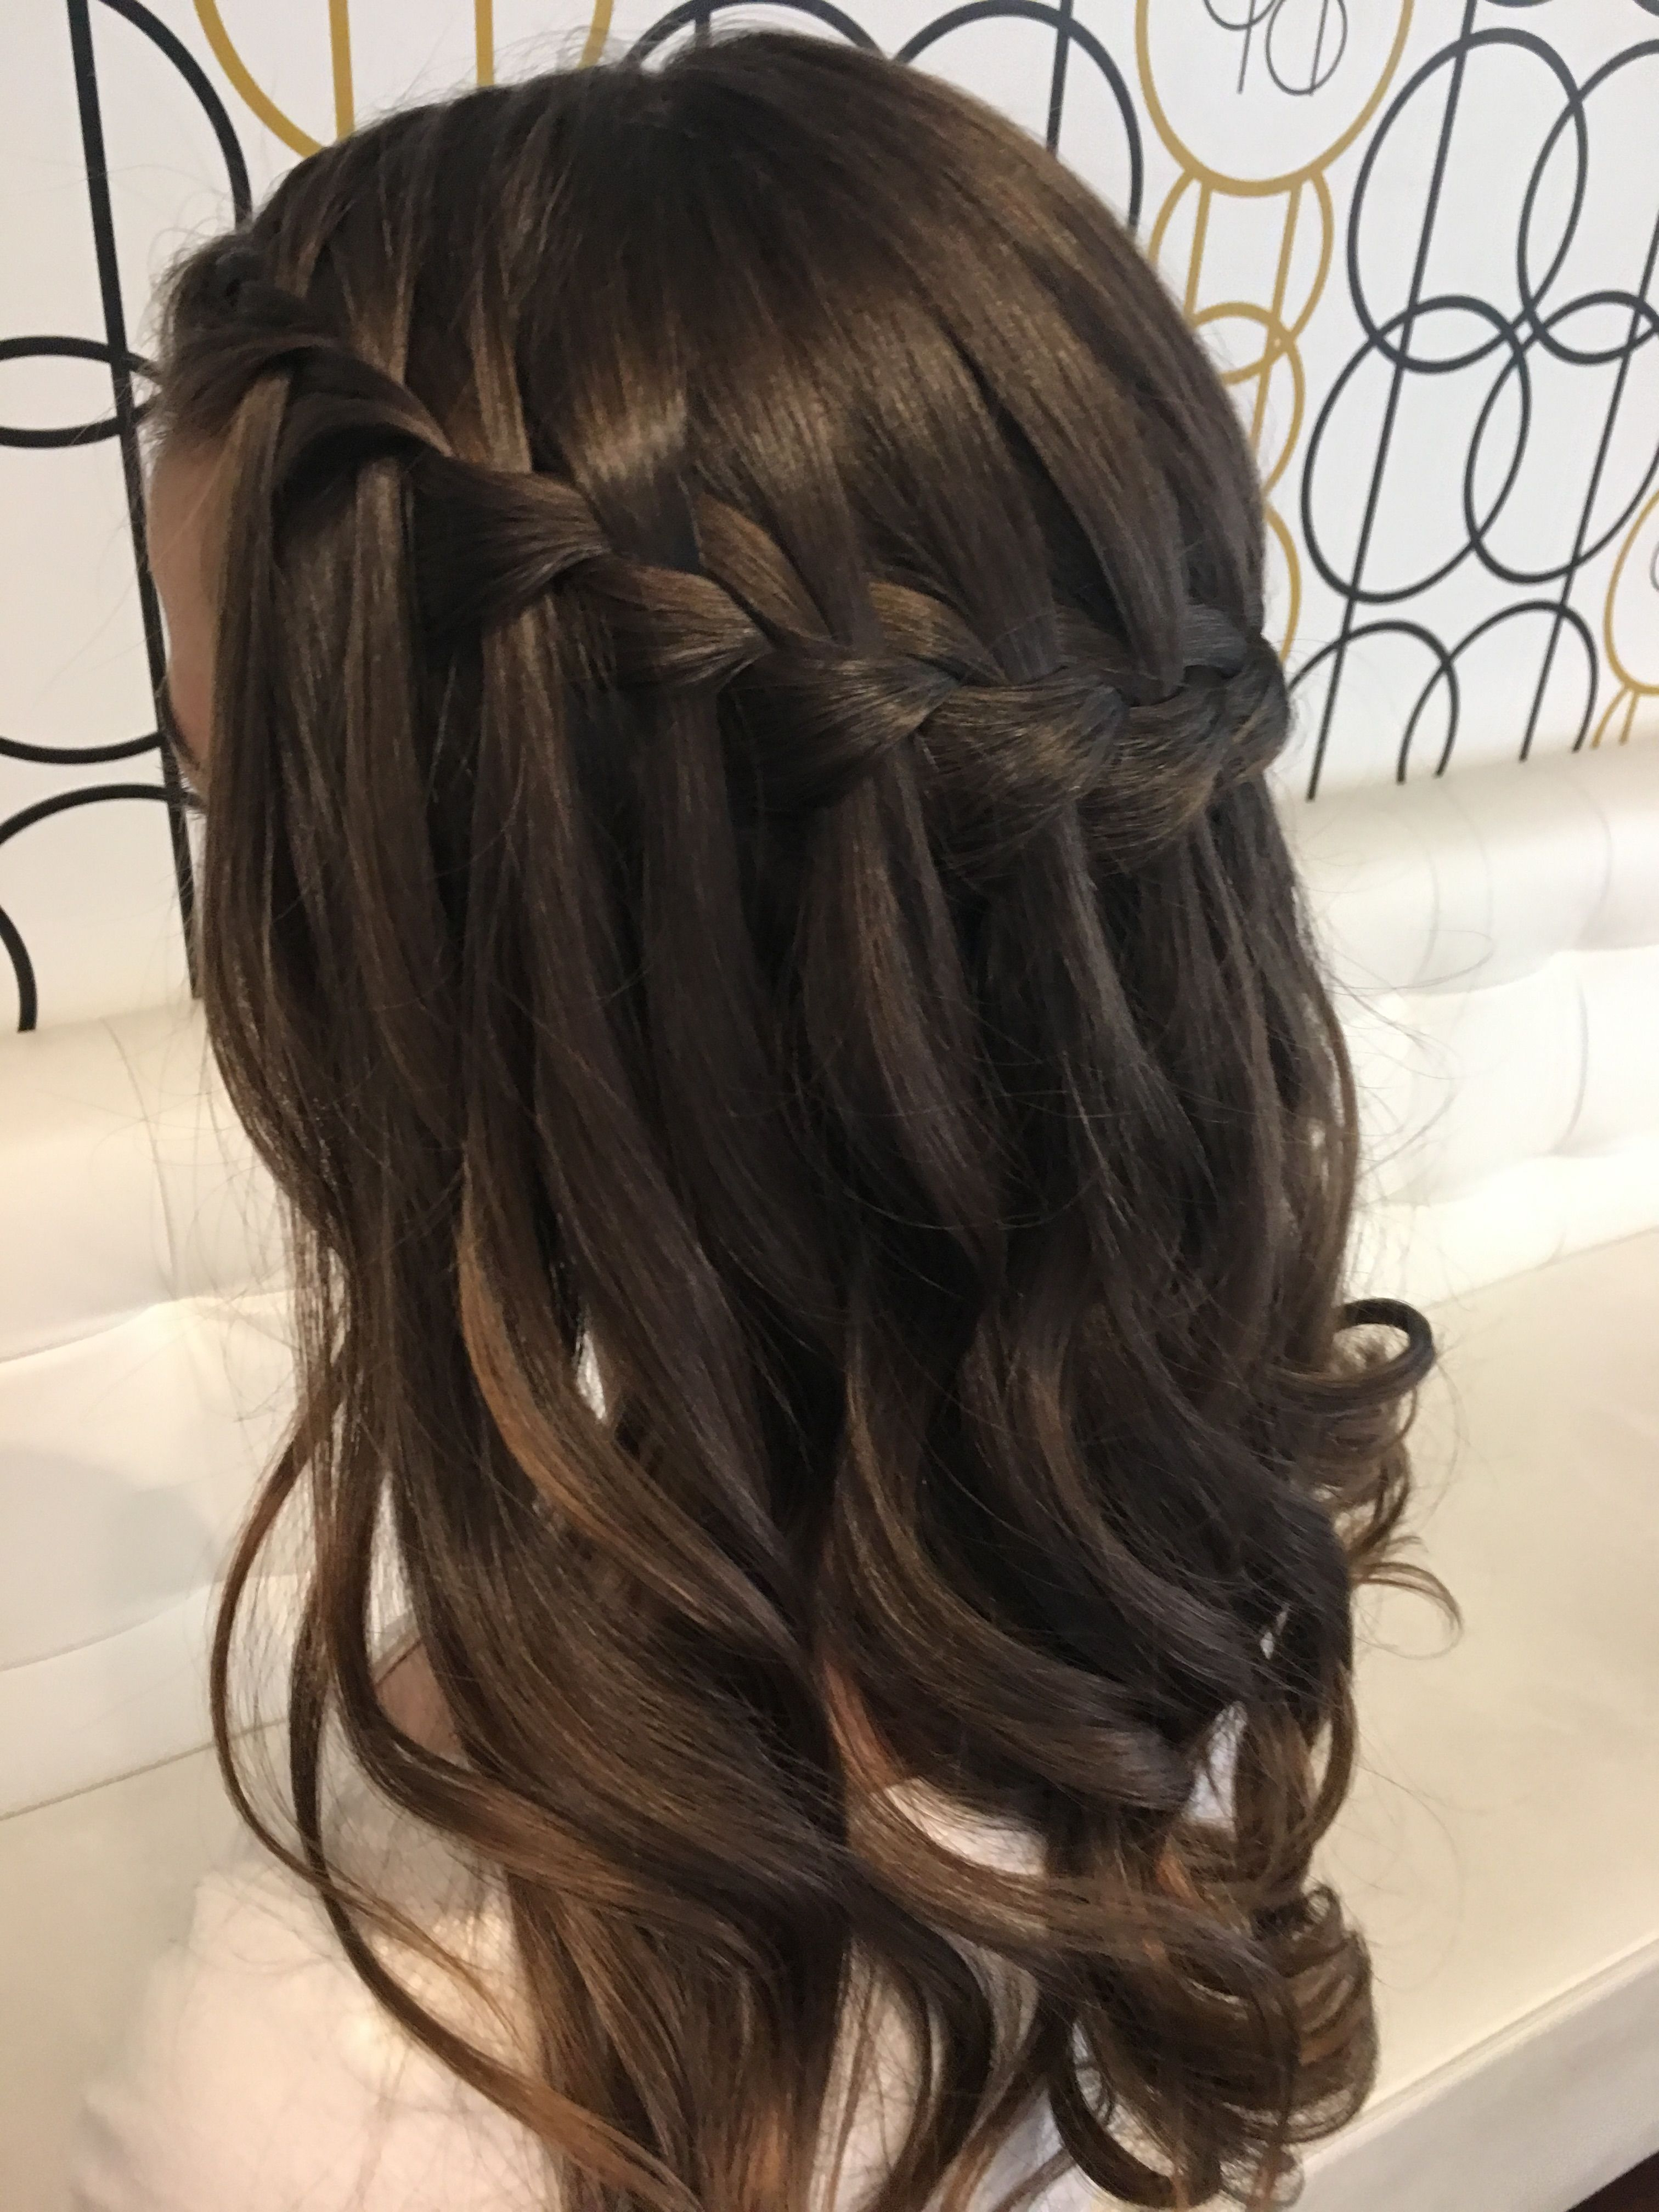 Newest Loose Curls Hairstyles For Wedding For Waterfall Braid With Loose Curls (View 10 of 20)